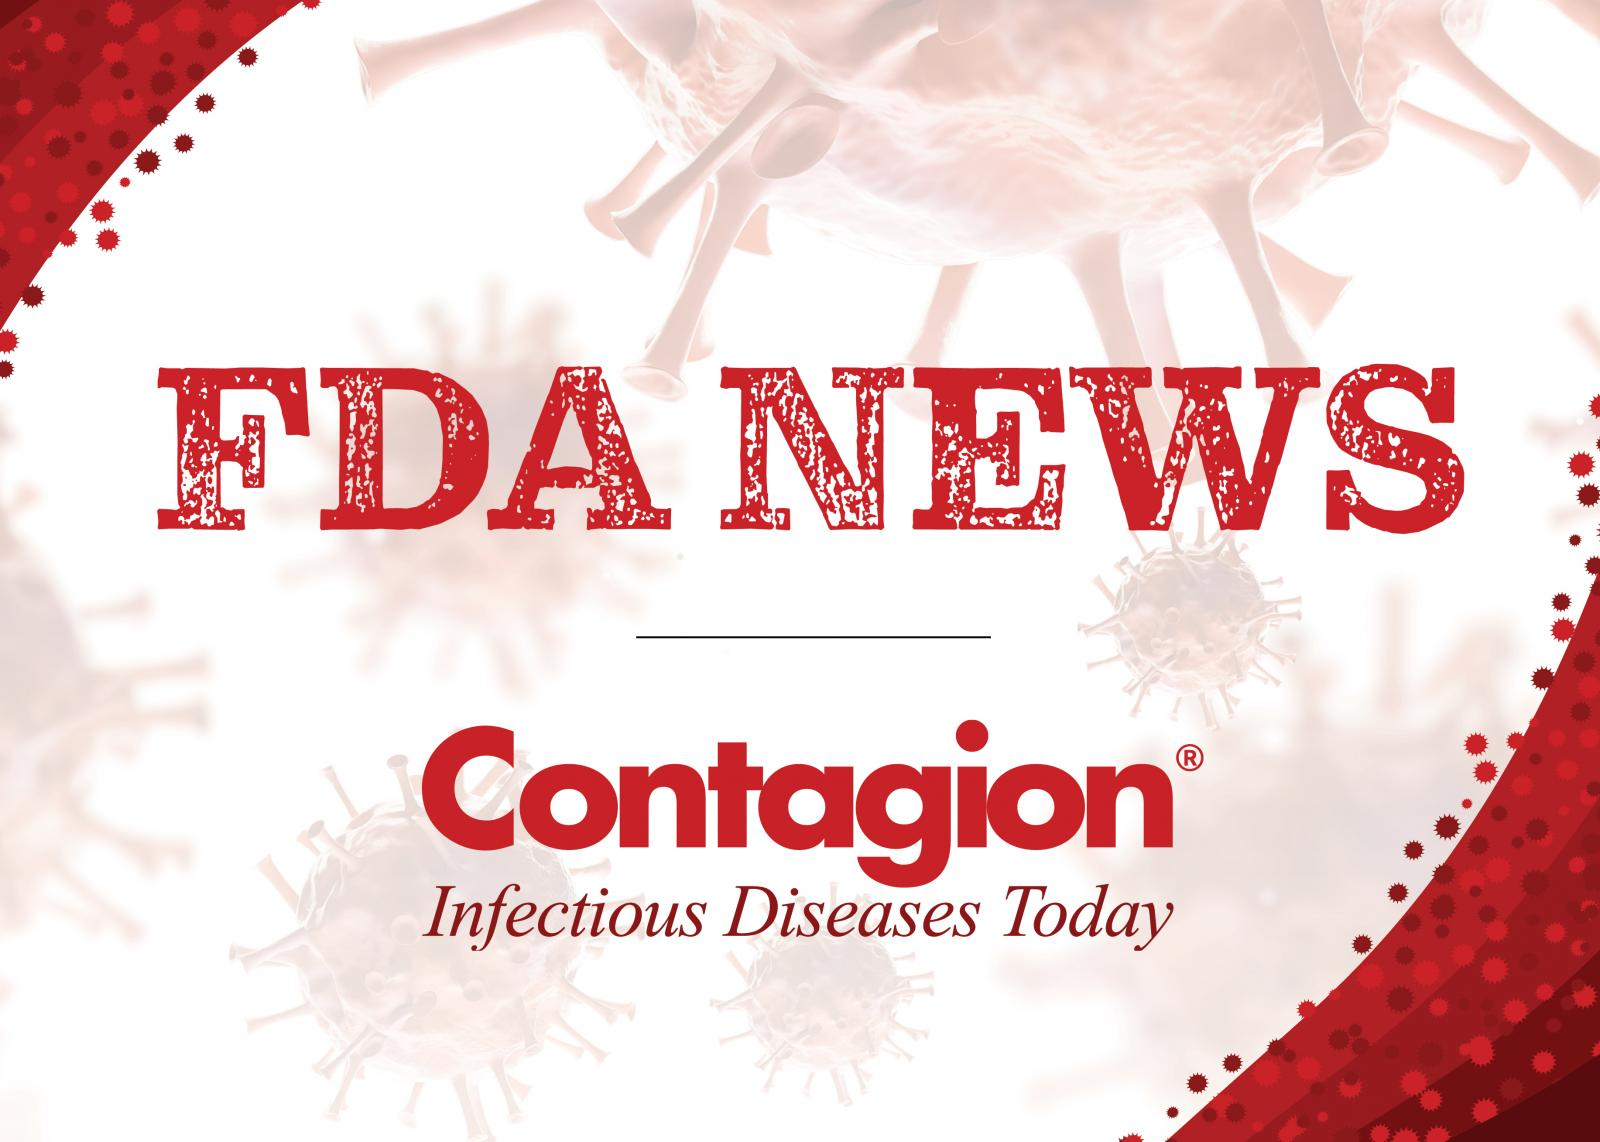 The ID Pipeline: FDA Activity From the Week of August 4, 2019